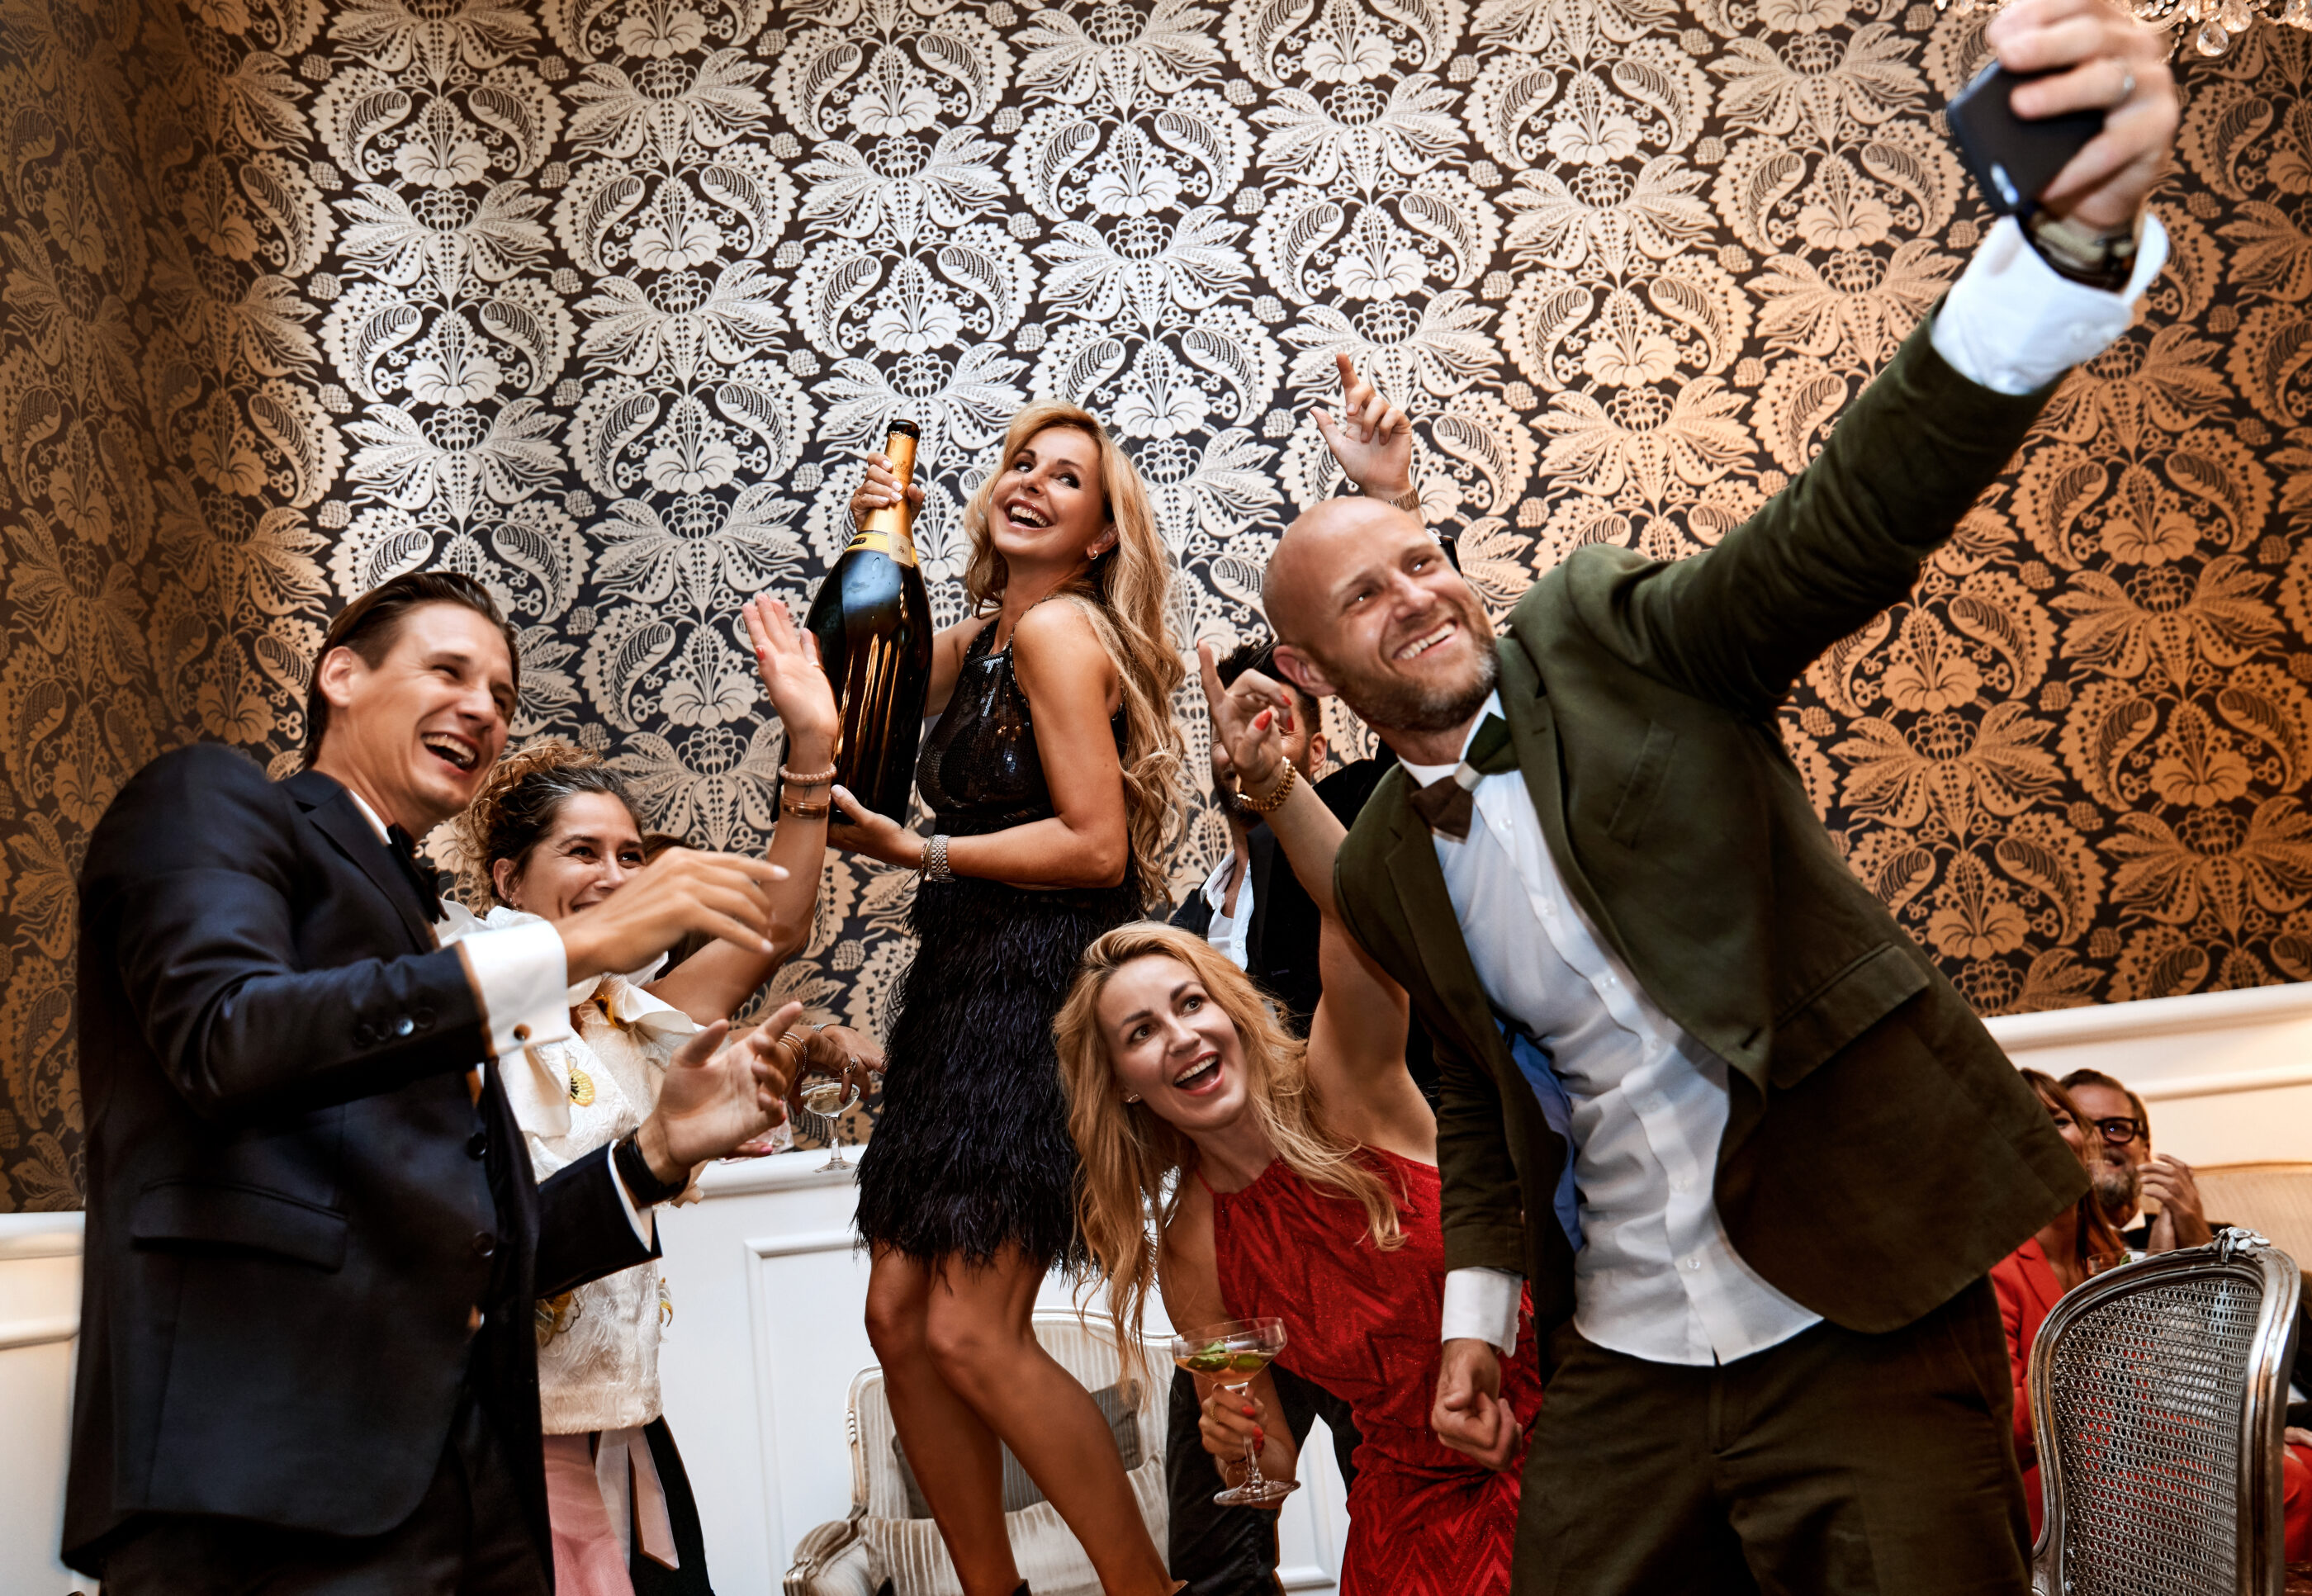 A group of people partying with a magnum champagne bottle taking a selfie